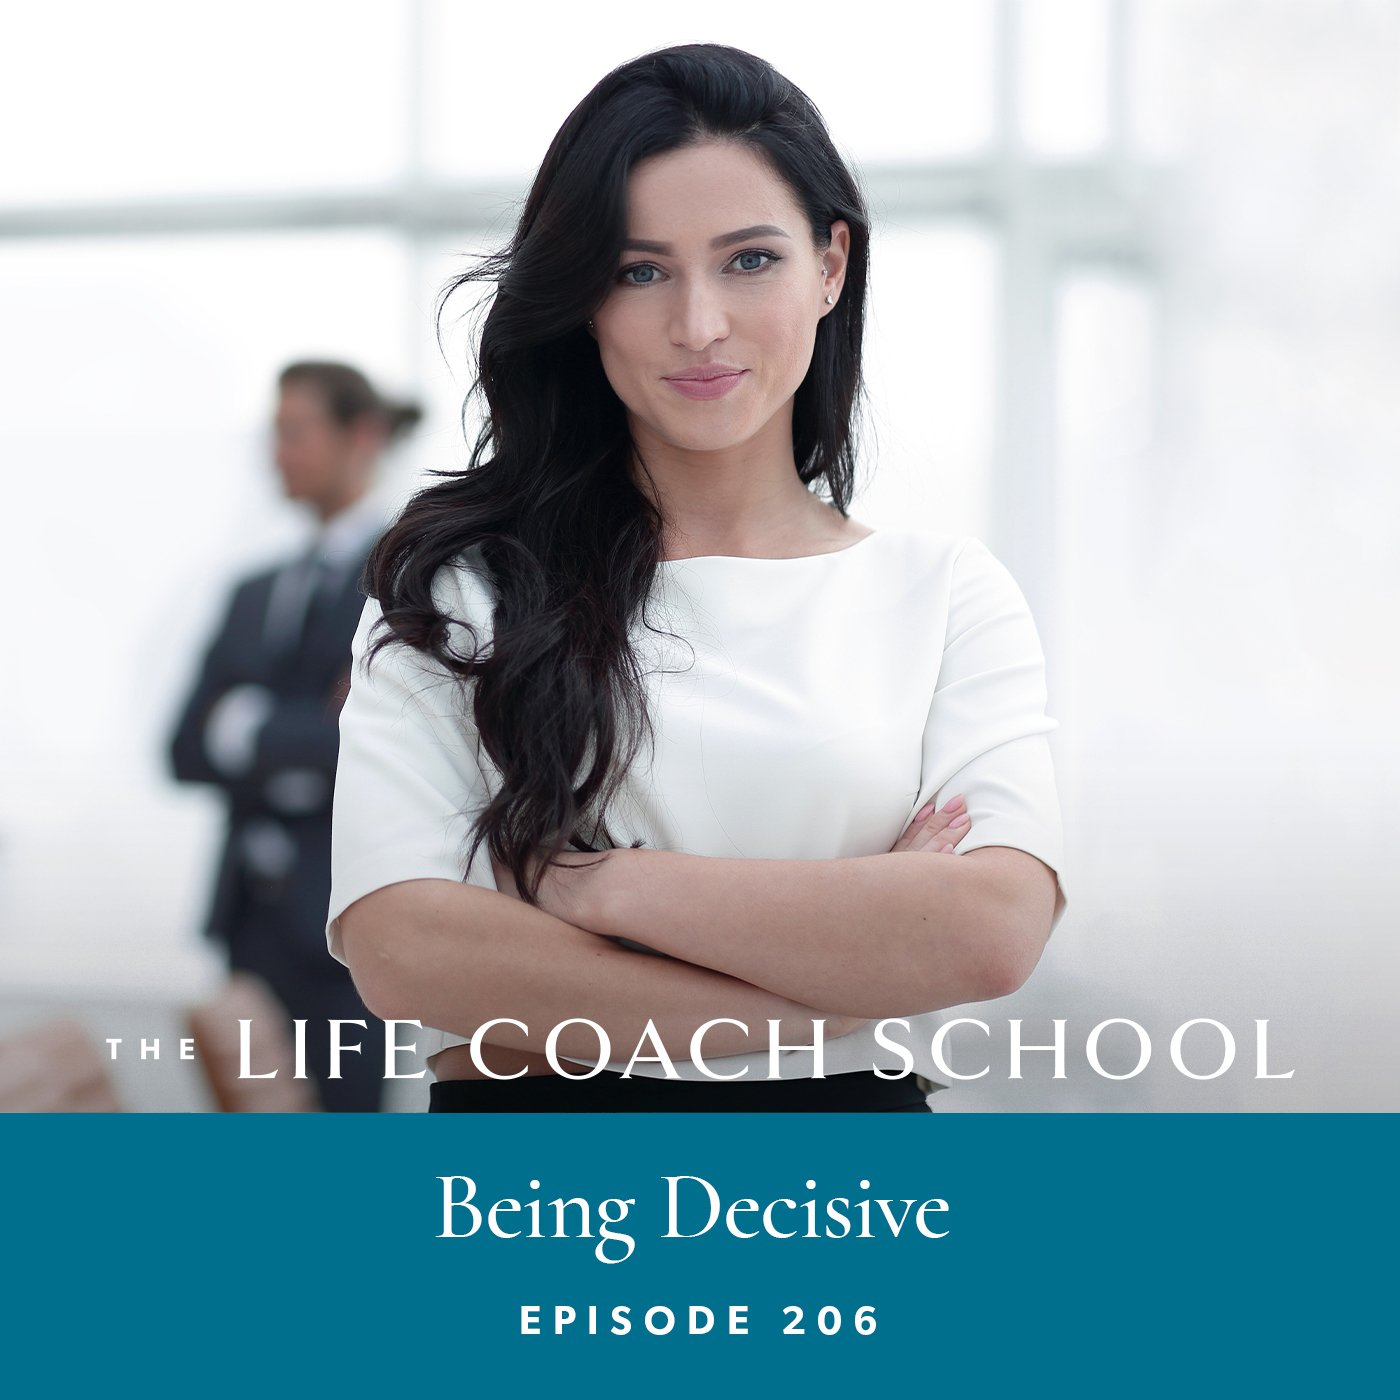 The Life Coach School Podcast with Brooke Castillo | Episode 206 | Being Decisive